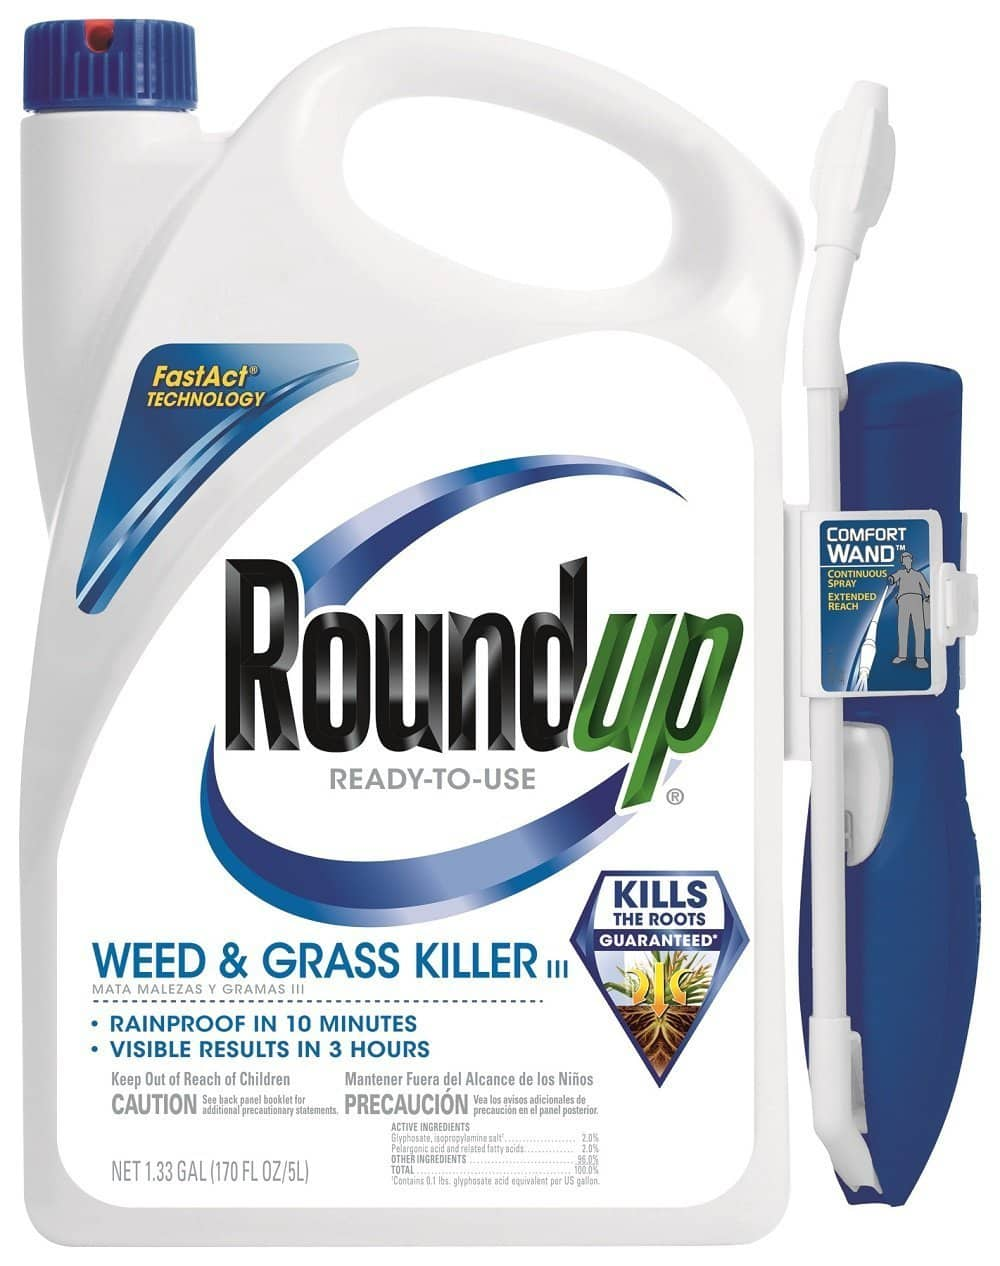 Add-On Item: Roundup 5200210 Weed and Grass Killer III Ready-to-Use Comfort Wand Sprayer, 1.33-Gallon - $5.00 @ amazon.com